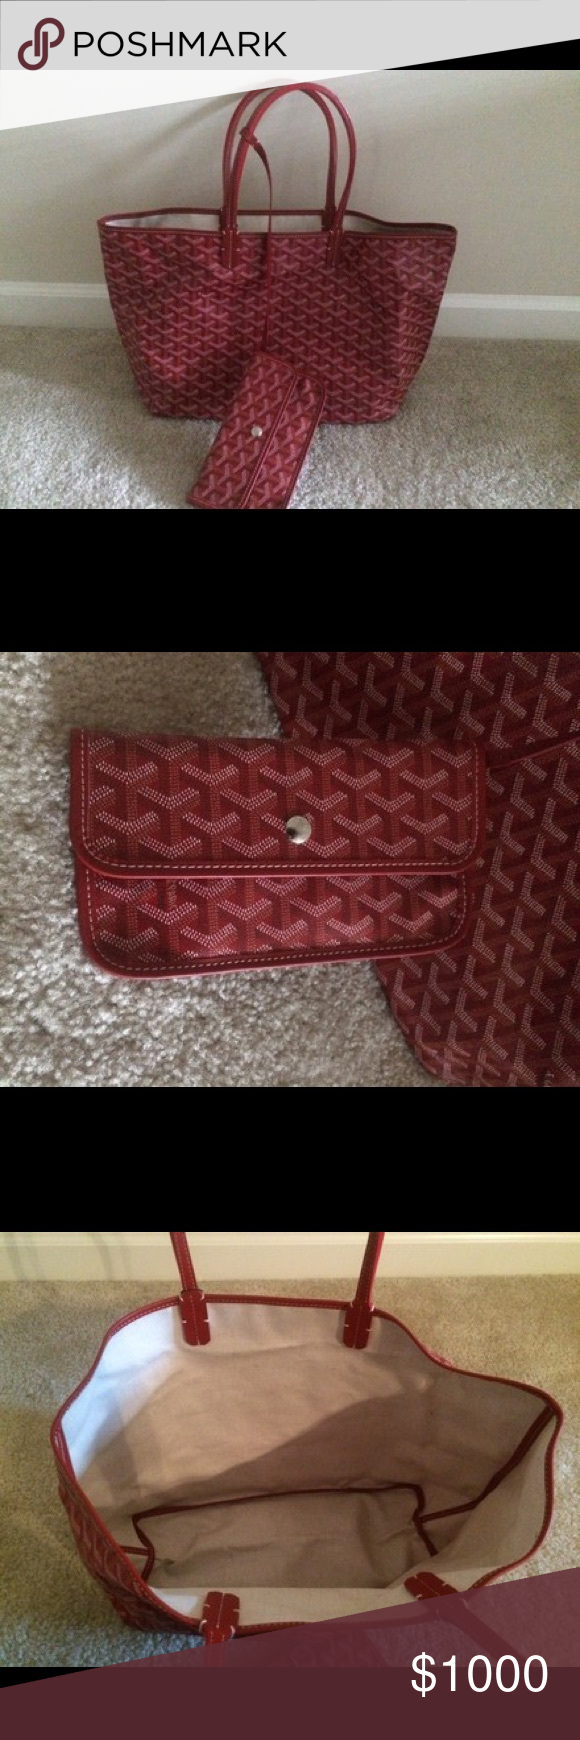 """Goyard St Louis Red Tote Used goyard tote in good condition comes with matching pouch and dustbag. Measurements are 18""""L x 11""""H x 6""""W 🅿️🅿️ only Goyard Bags Totes"""